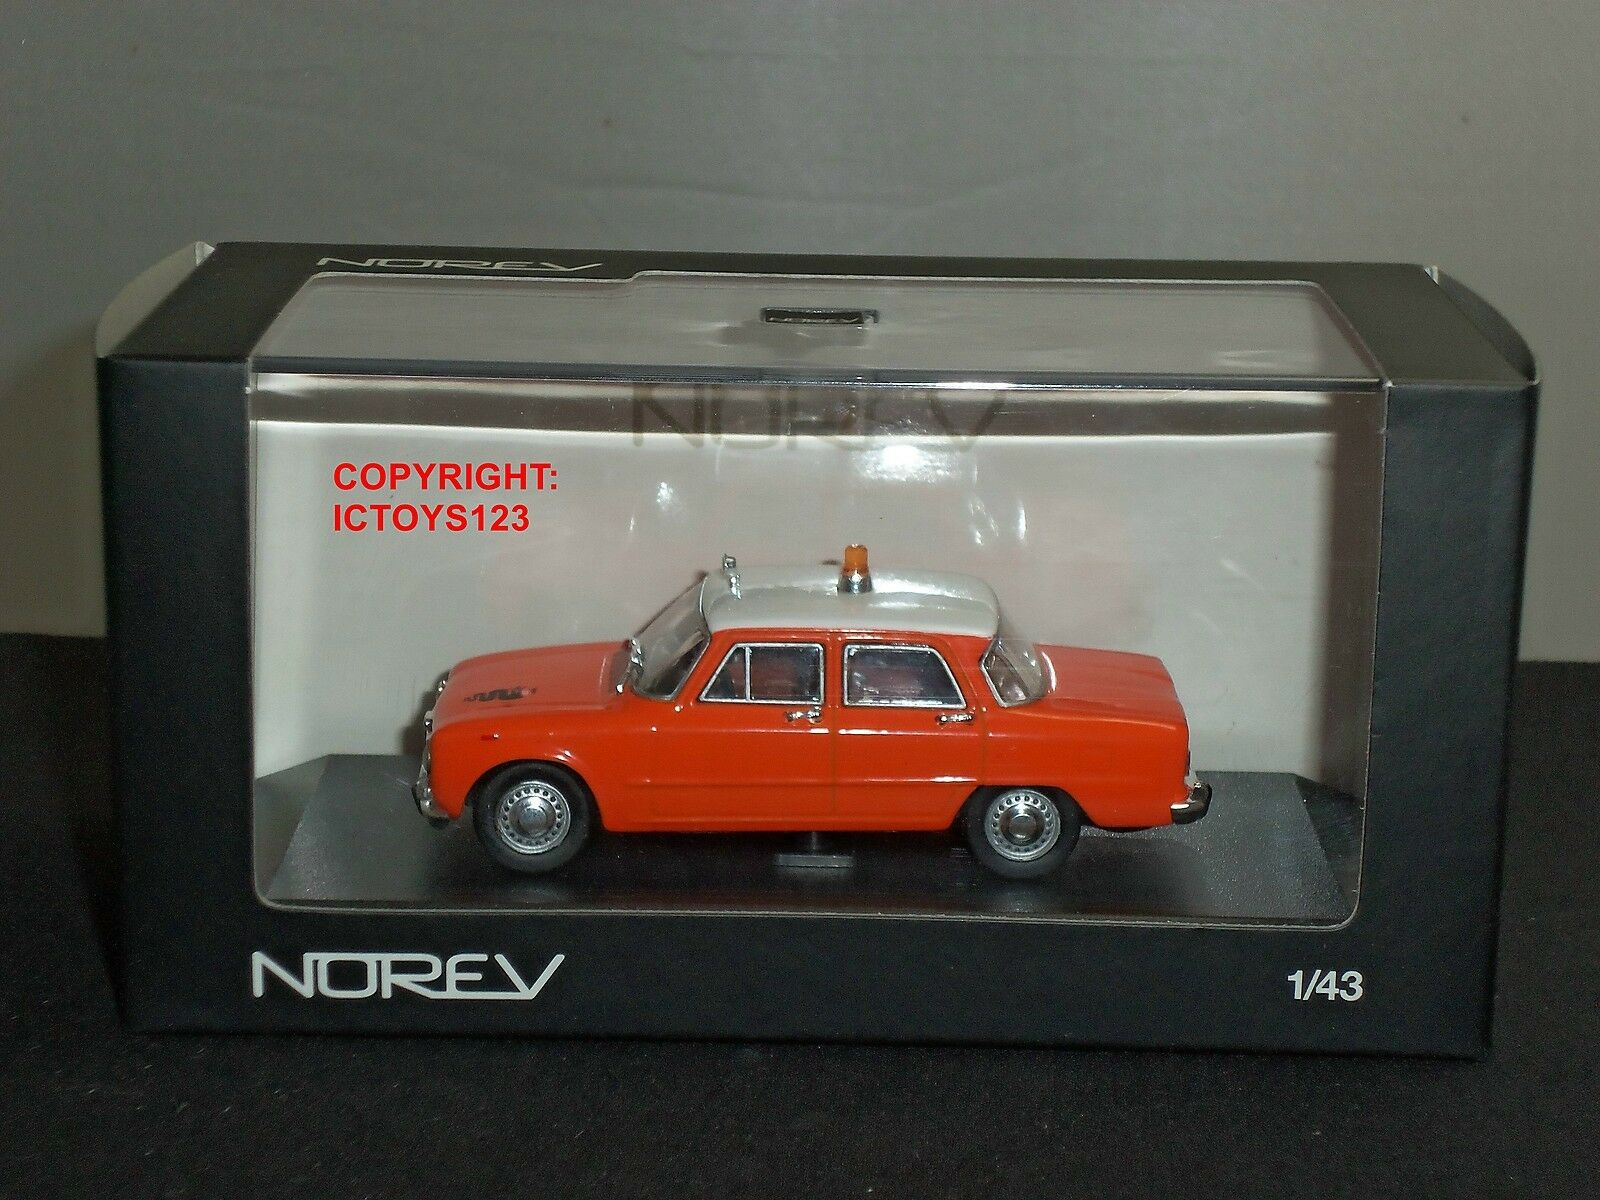 NOREV 790303 ALFA ROMEO GIULIA 1300 TI orange DIECAST MODEL CAR